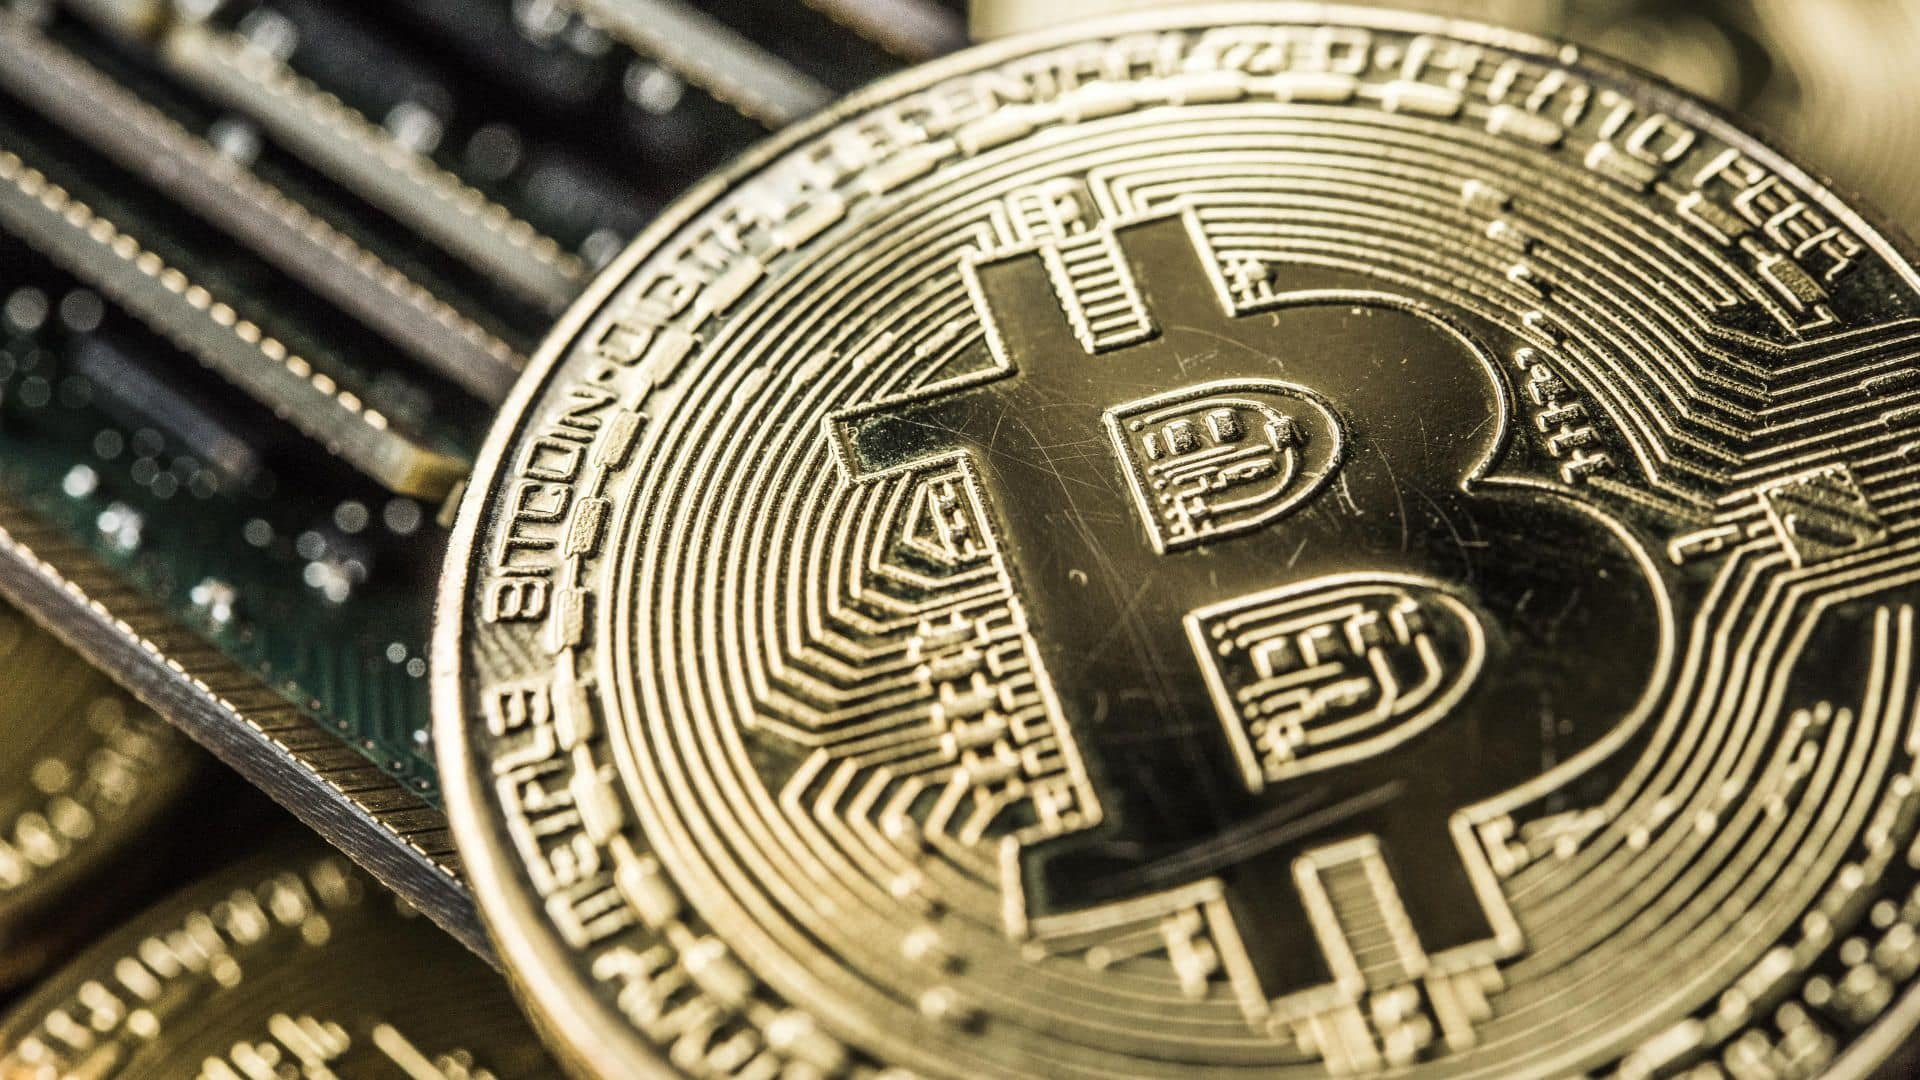 South Korean cryptocurrency official found dead at home, reports say